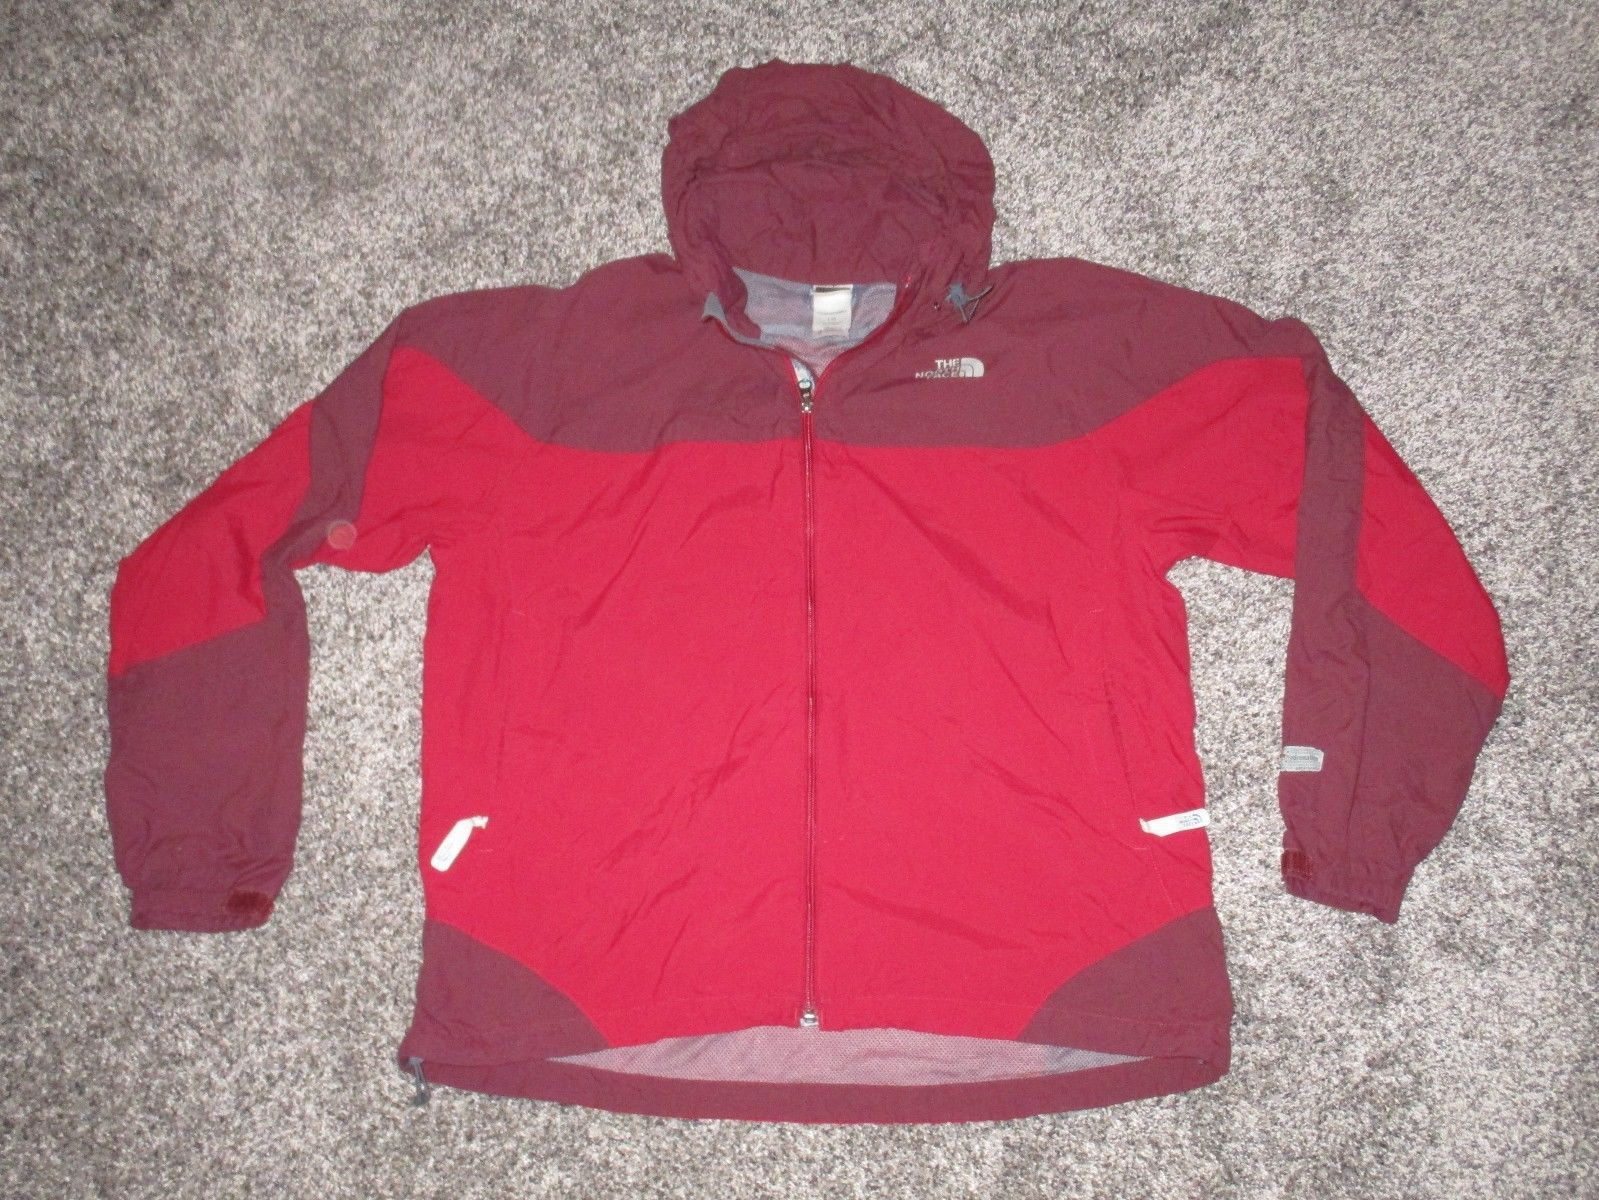 6ad08c18e The North Face Hydrenalite Hooded Light and 41 similar items